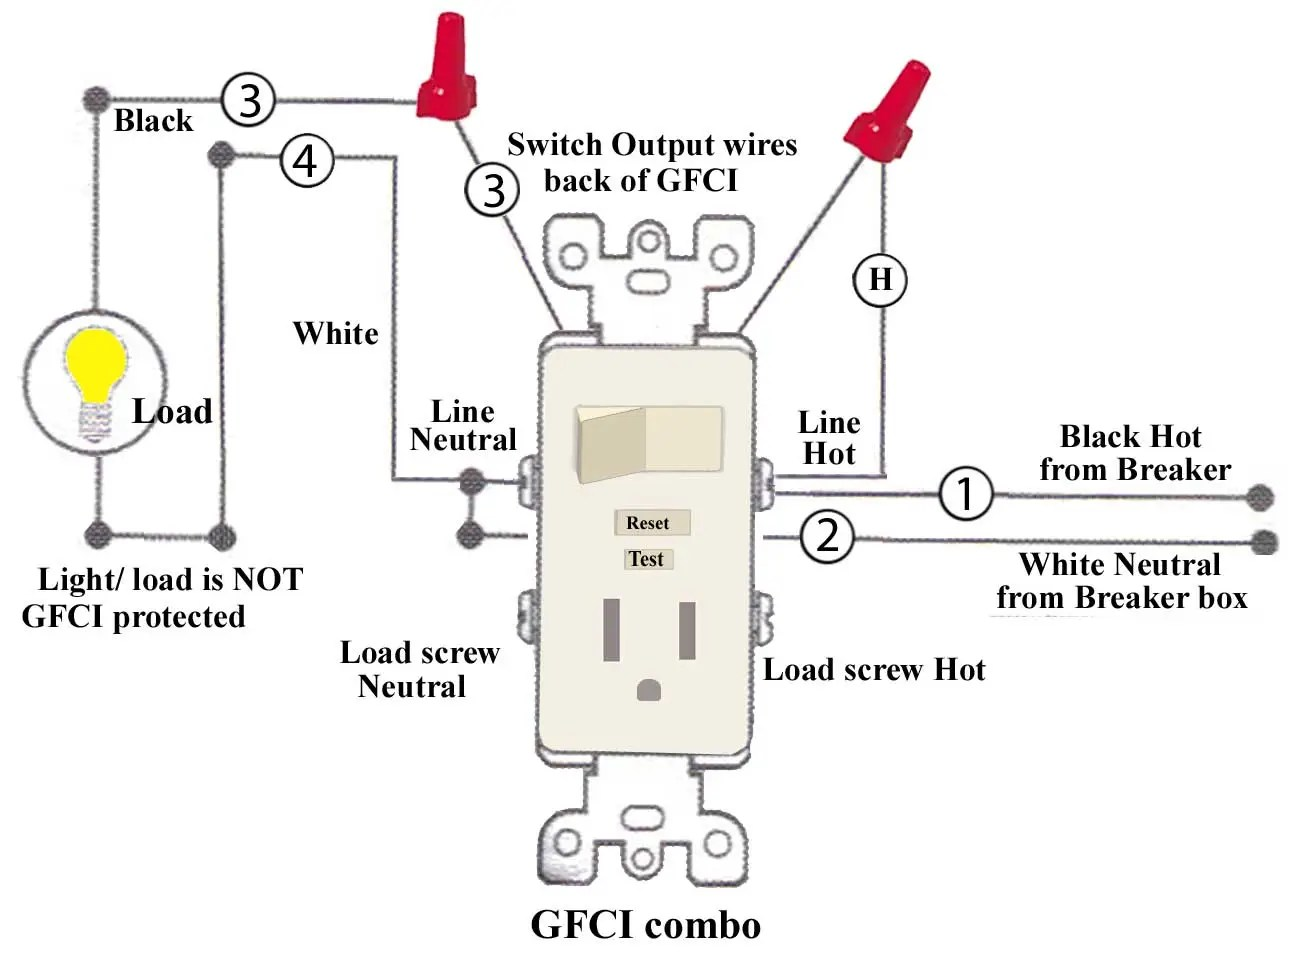 hight resolution of 3 wire gfci circuit diagram trusted wiring diagram gfci line load wiring diagram 3 wire gfci schematic wiring diagram